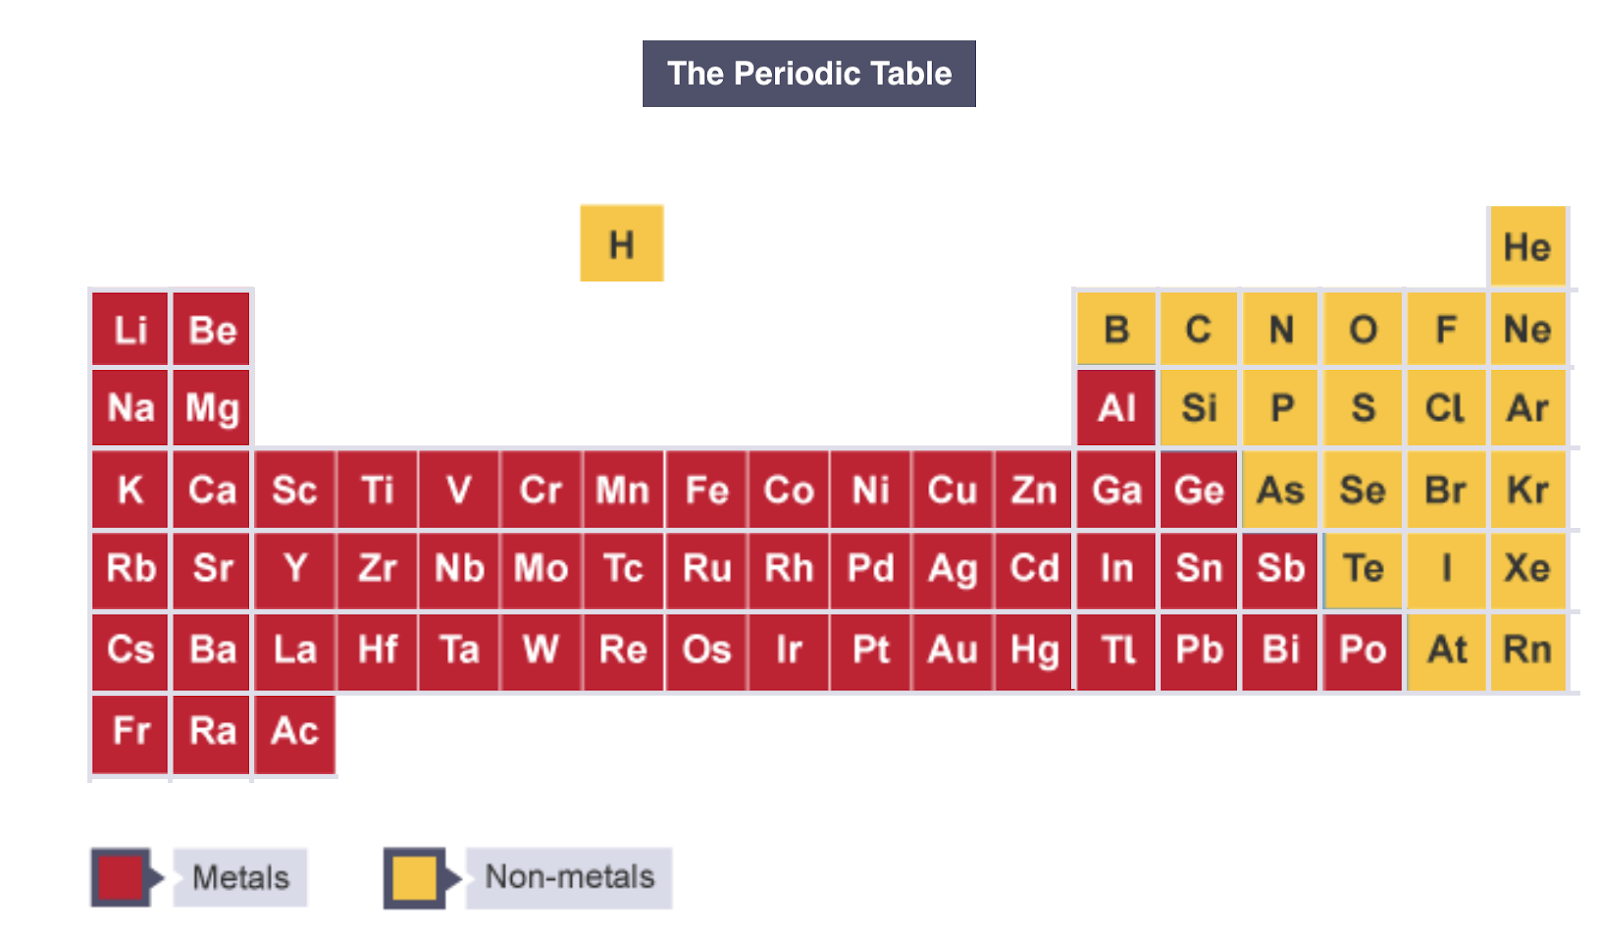 Igcse chemistry 2017 121 identify an element as a metal or a non 121 identify an element as a metal or a non metal according to its position in the periodic table urtaz Gallery